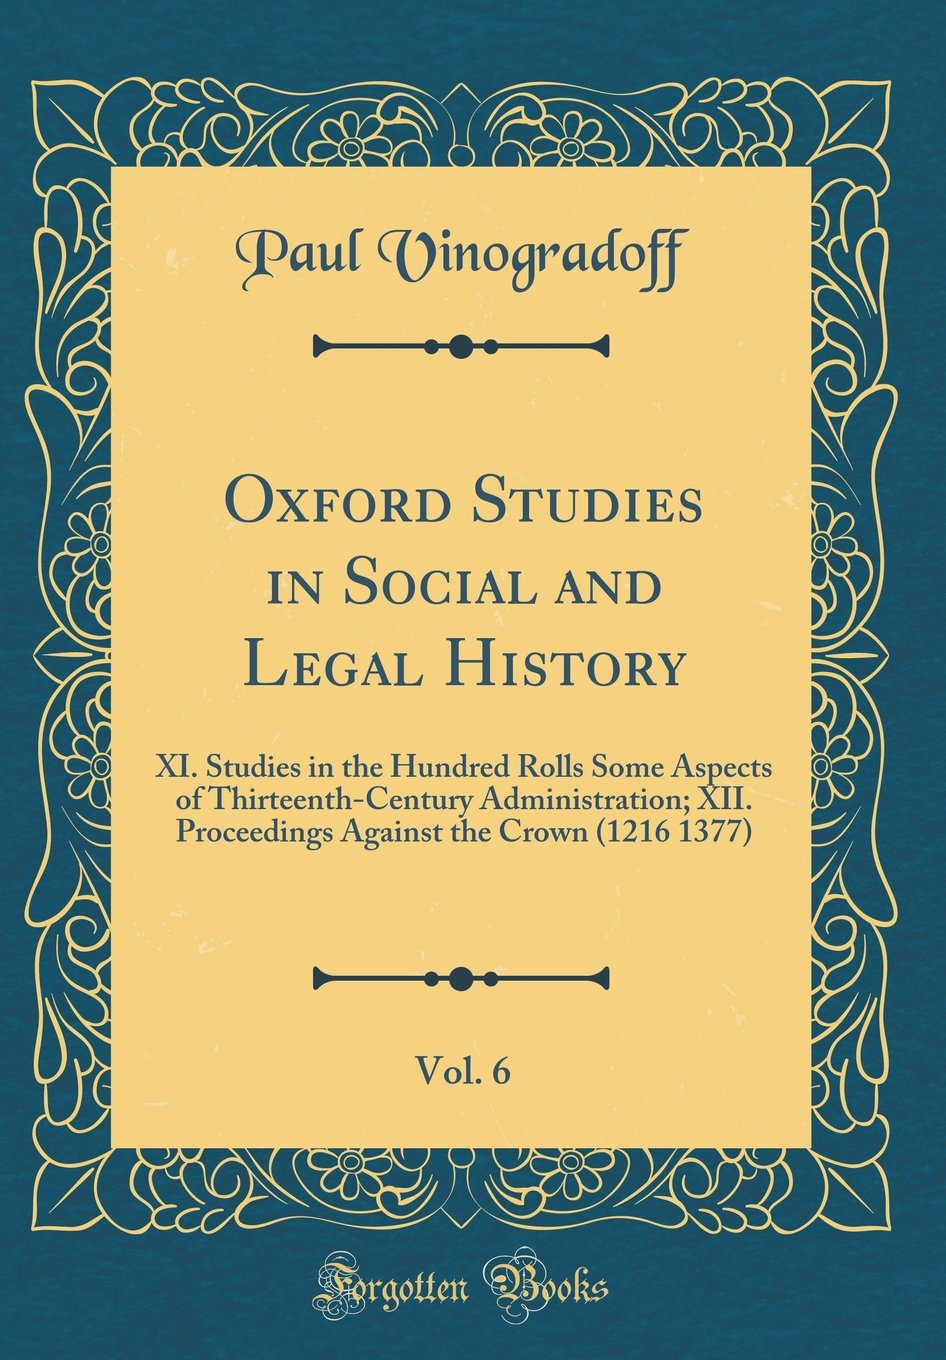 Download Oxford Studies in Social and Legal History, Vol. 6: XI. Studies in the Hundred Rolls Some Aspects of Thirteenth-Century Administration; XII. Proceedings Against the Crown (1216 1377) (Classic Reprint) ebook